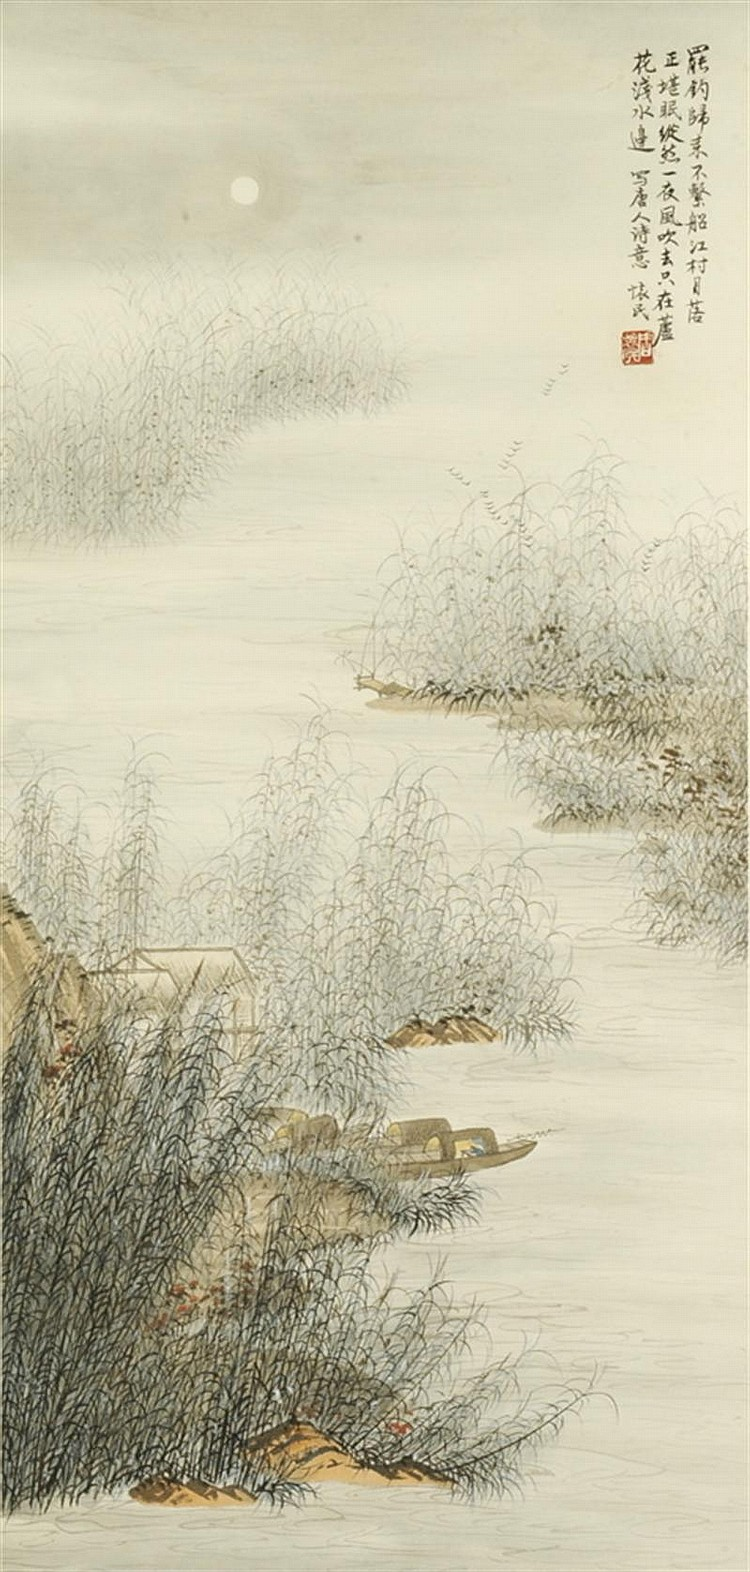 SCROLL PAINTING ON PAPER Zhou Huaimin (1906 - 1996). A riverbank with boats, reeds and cottage. Signed, with the seal of the artist....